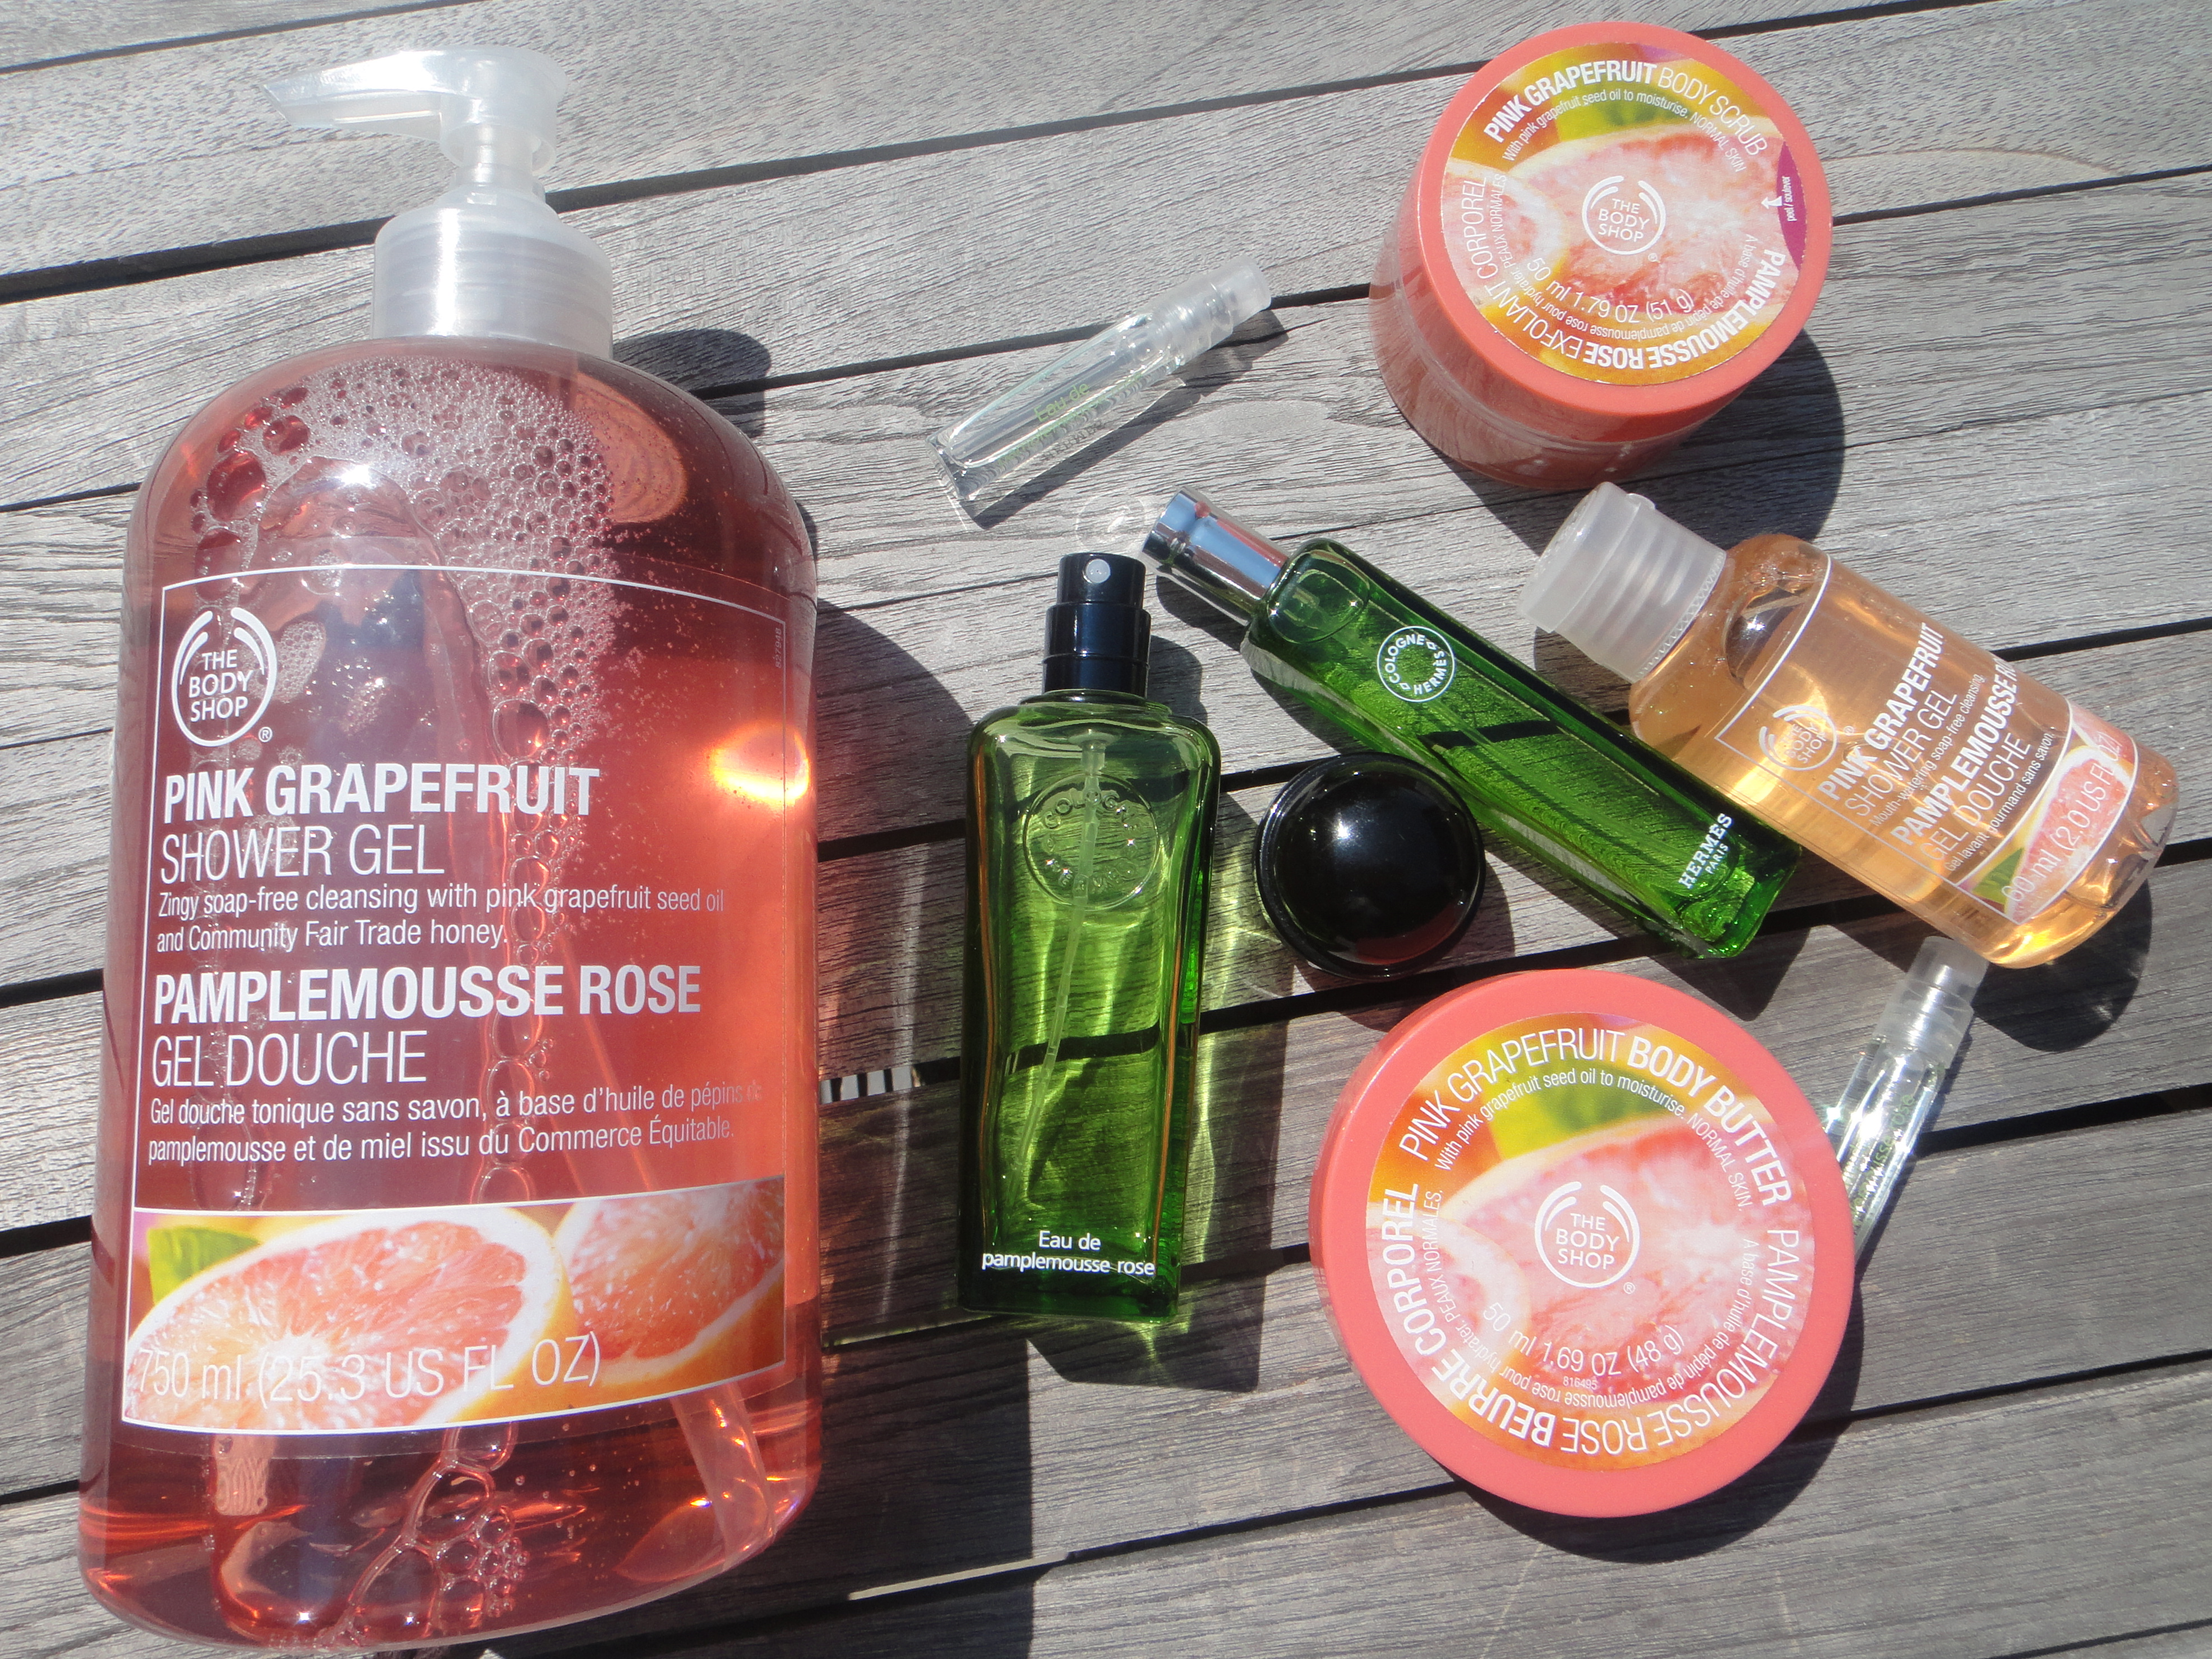 Pamplemousse rose Pink Grapefruit - Hermès & The Body Shop